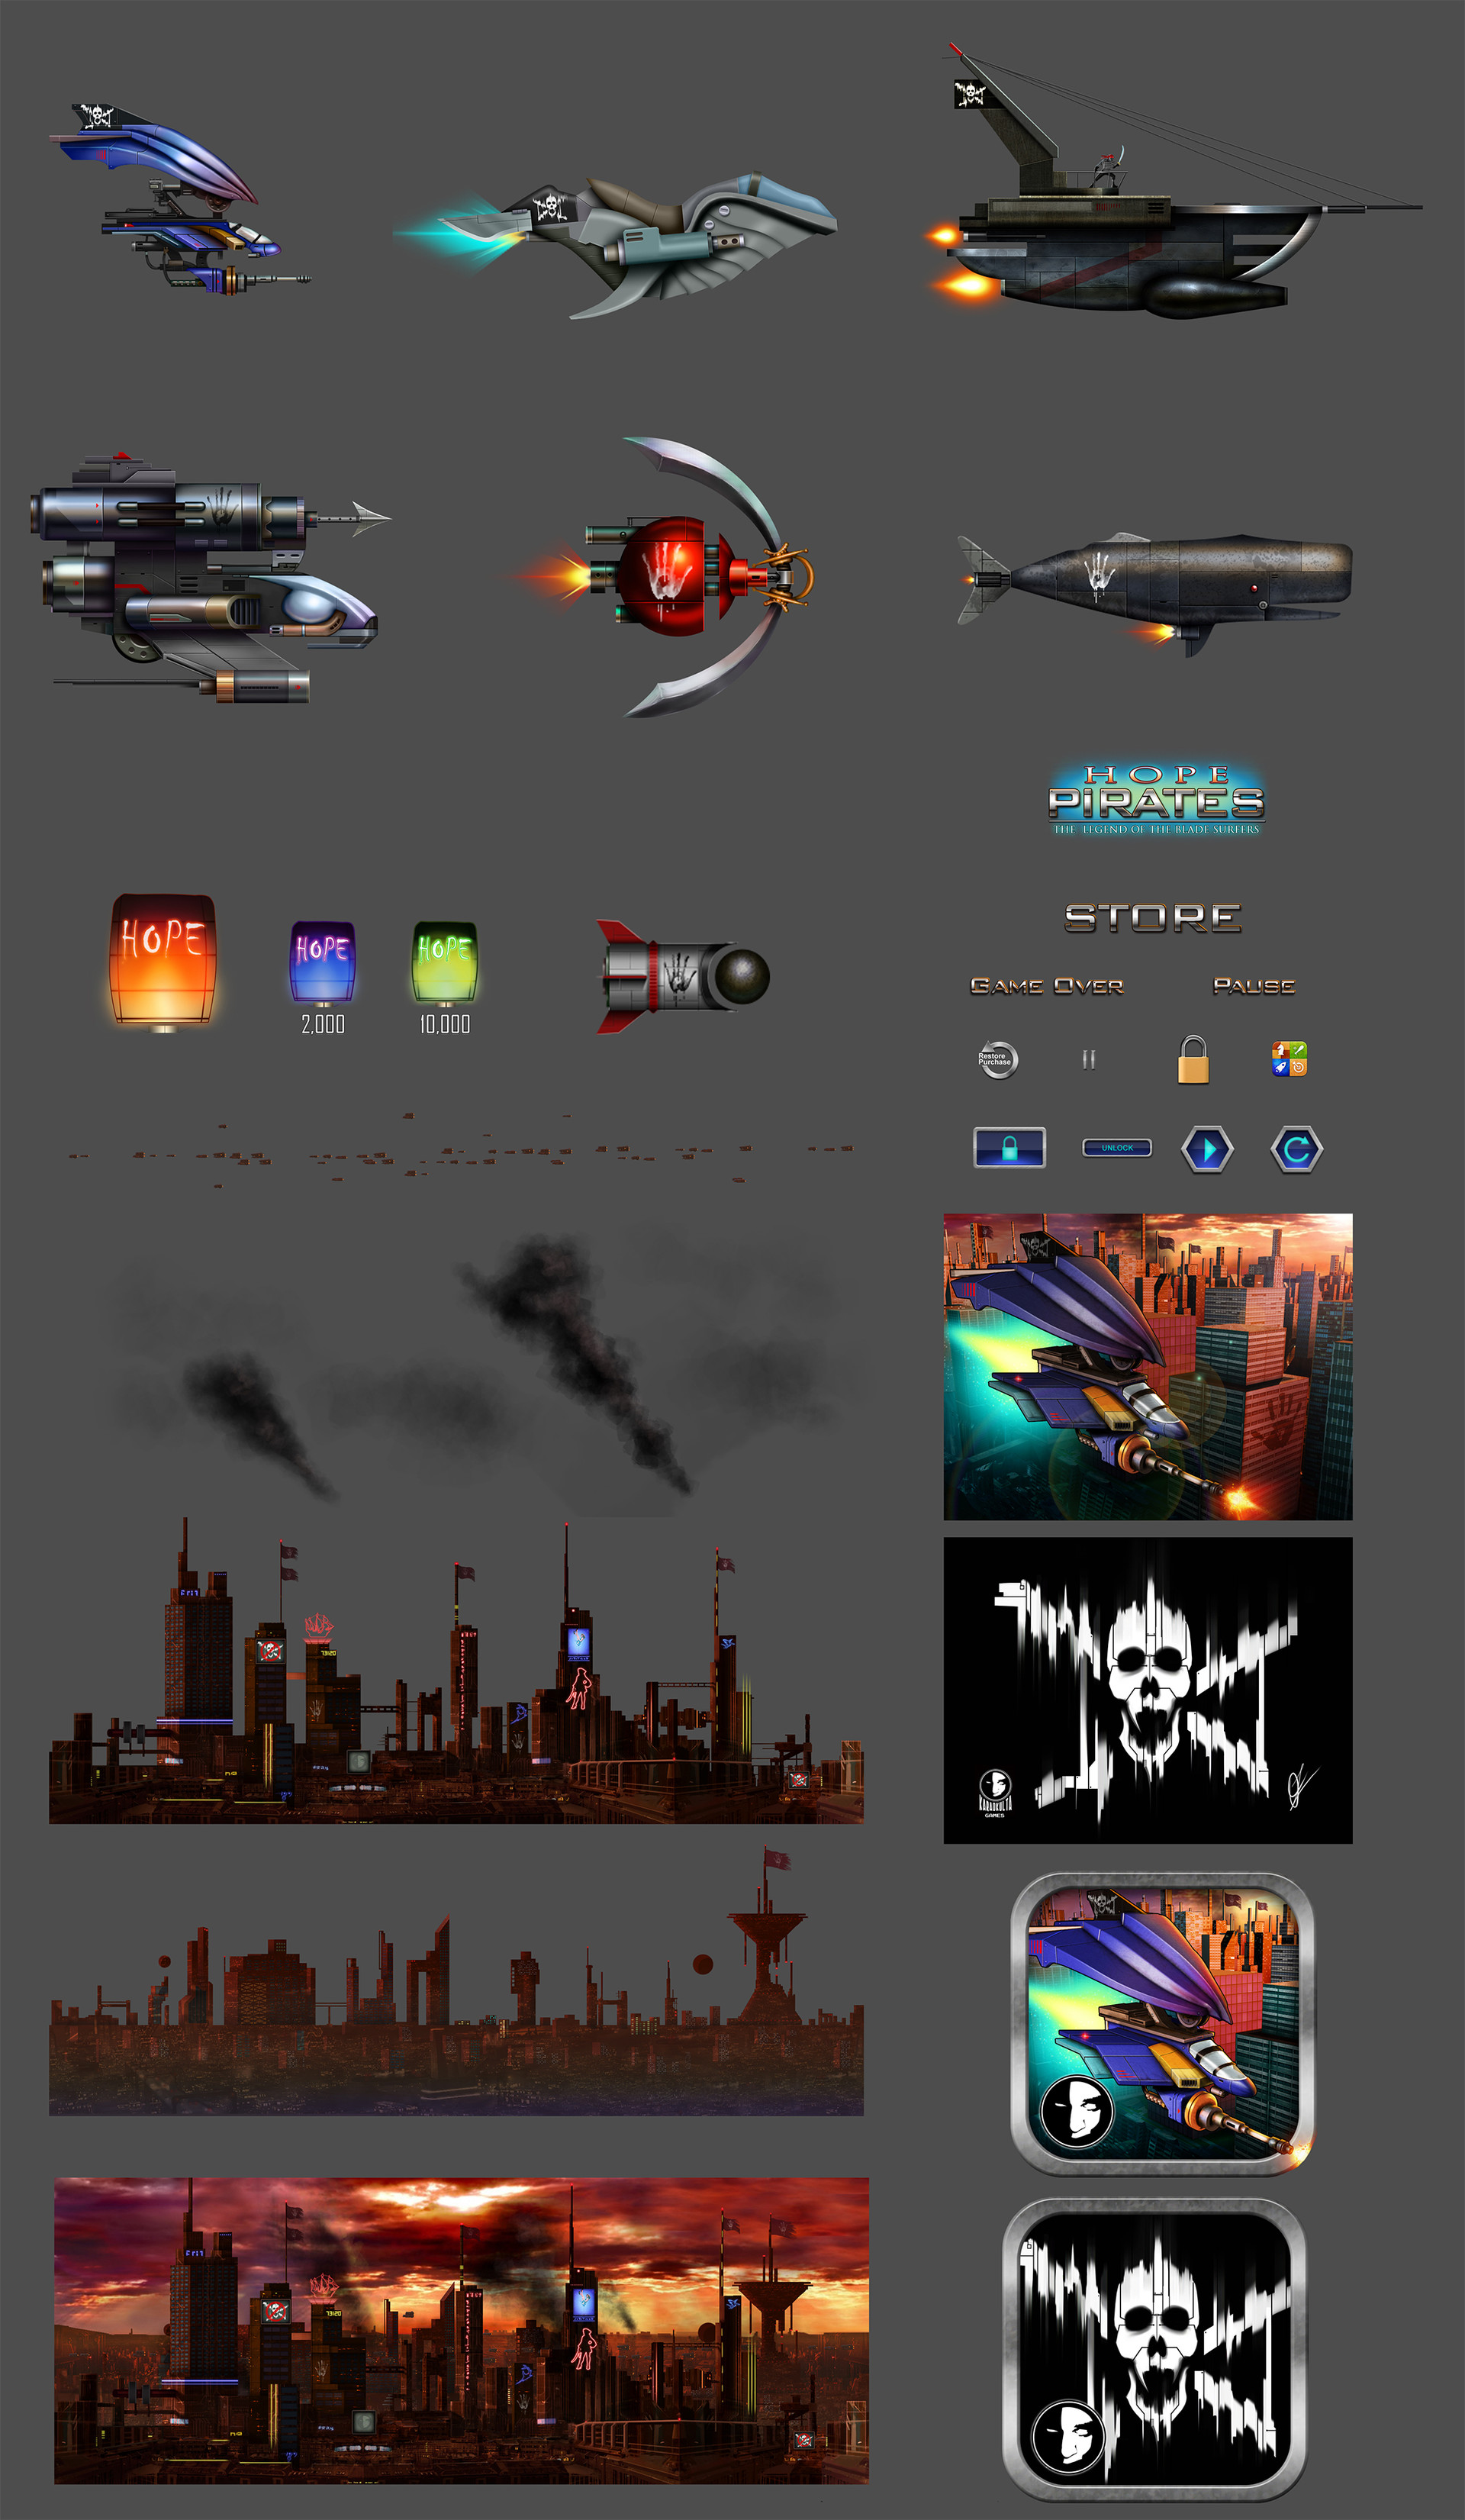 Oziel leal salinas hope pirates 2d assets